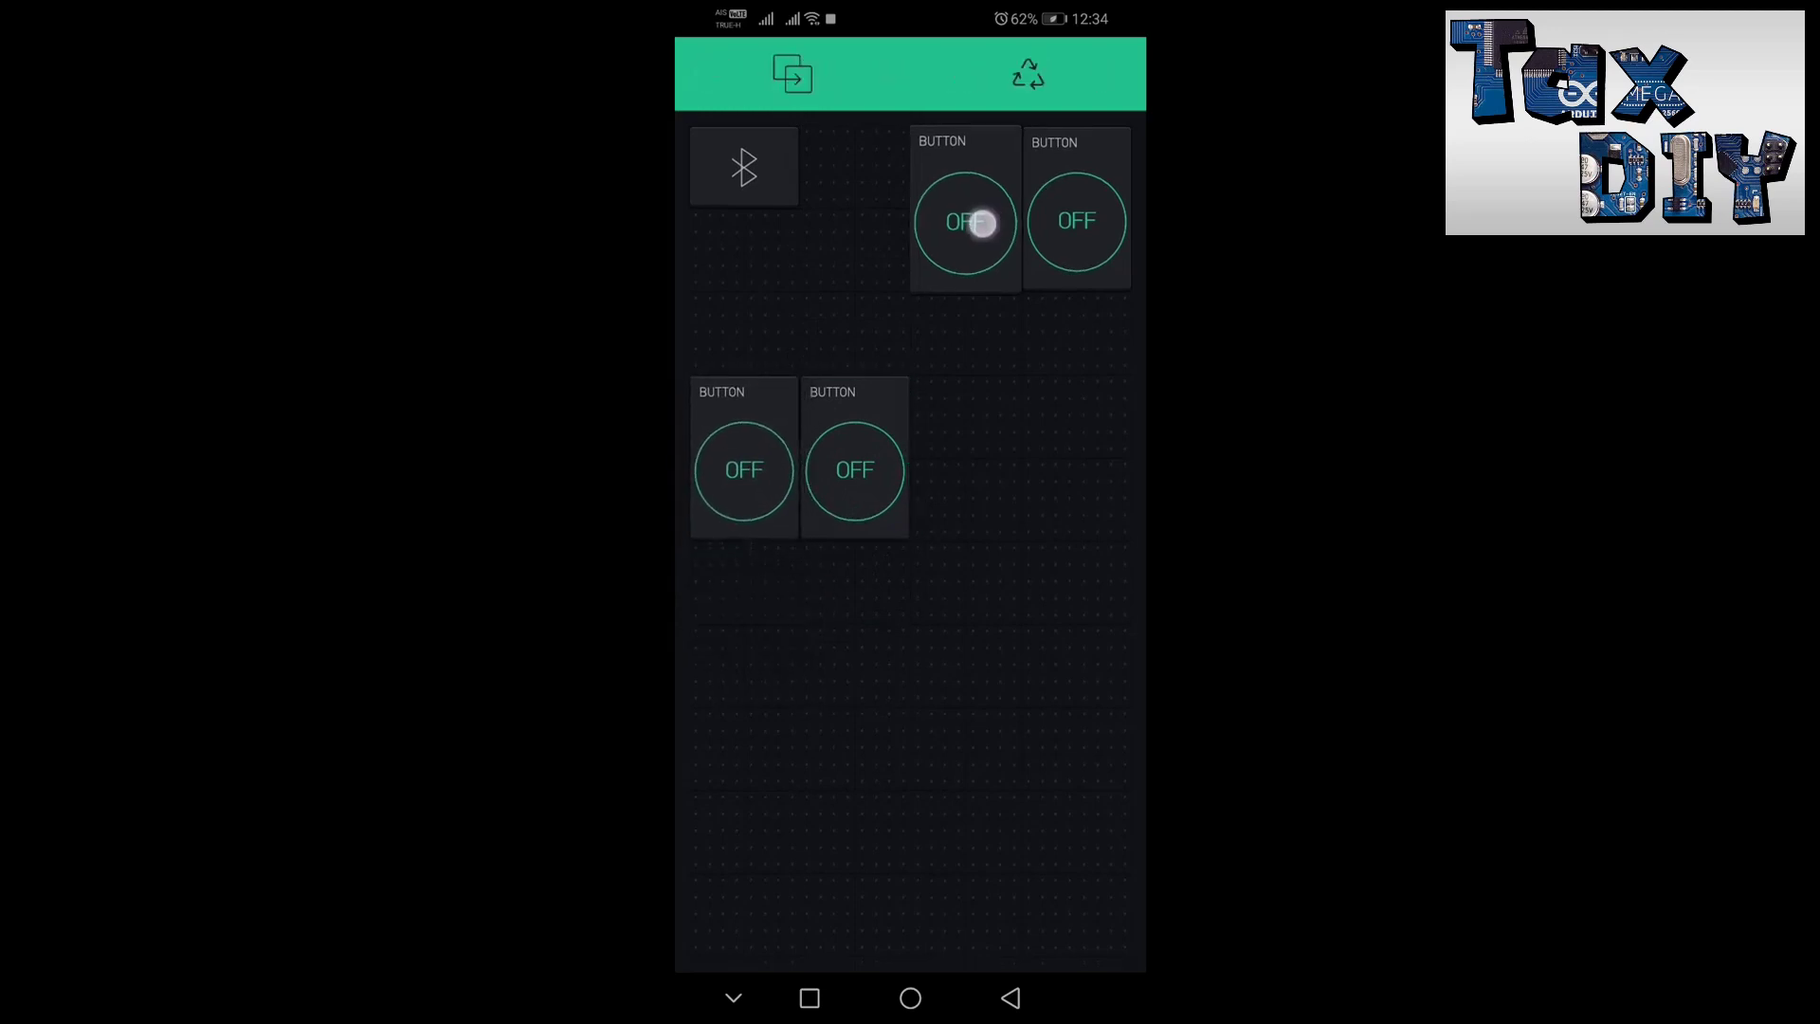 Download Application Blynk and Set Button